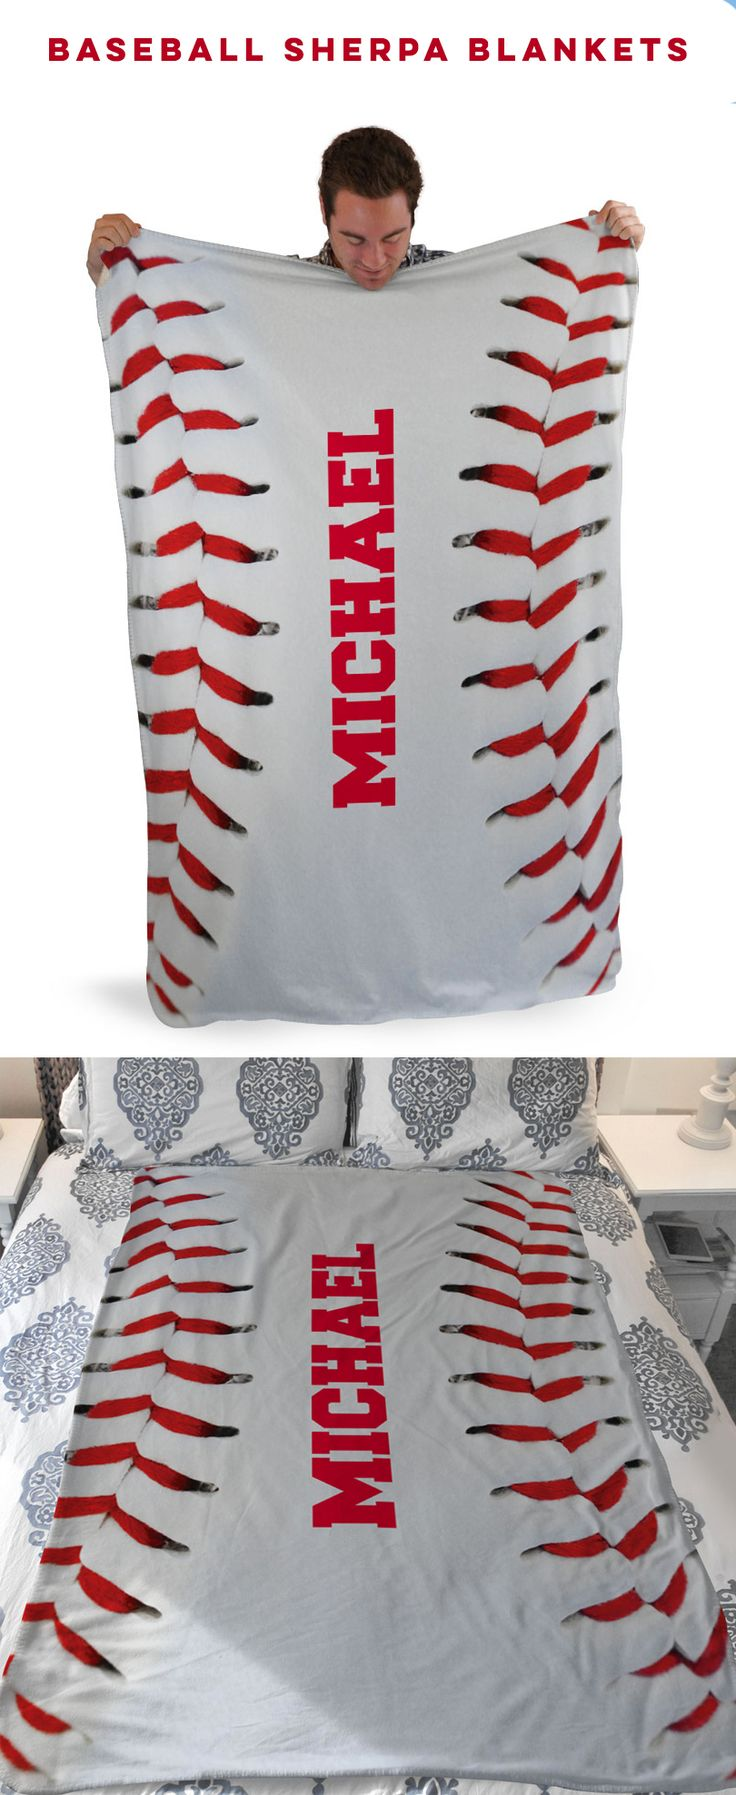 Custom Baseball Stitches Sherpa Fleece Blanket! A great baseball team gift idea!